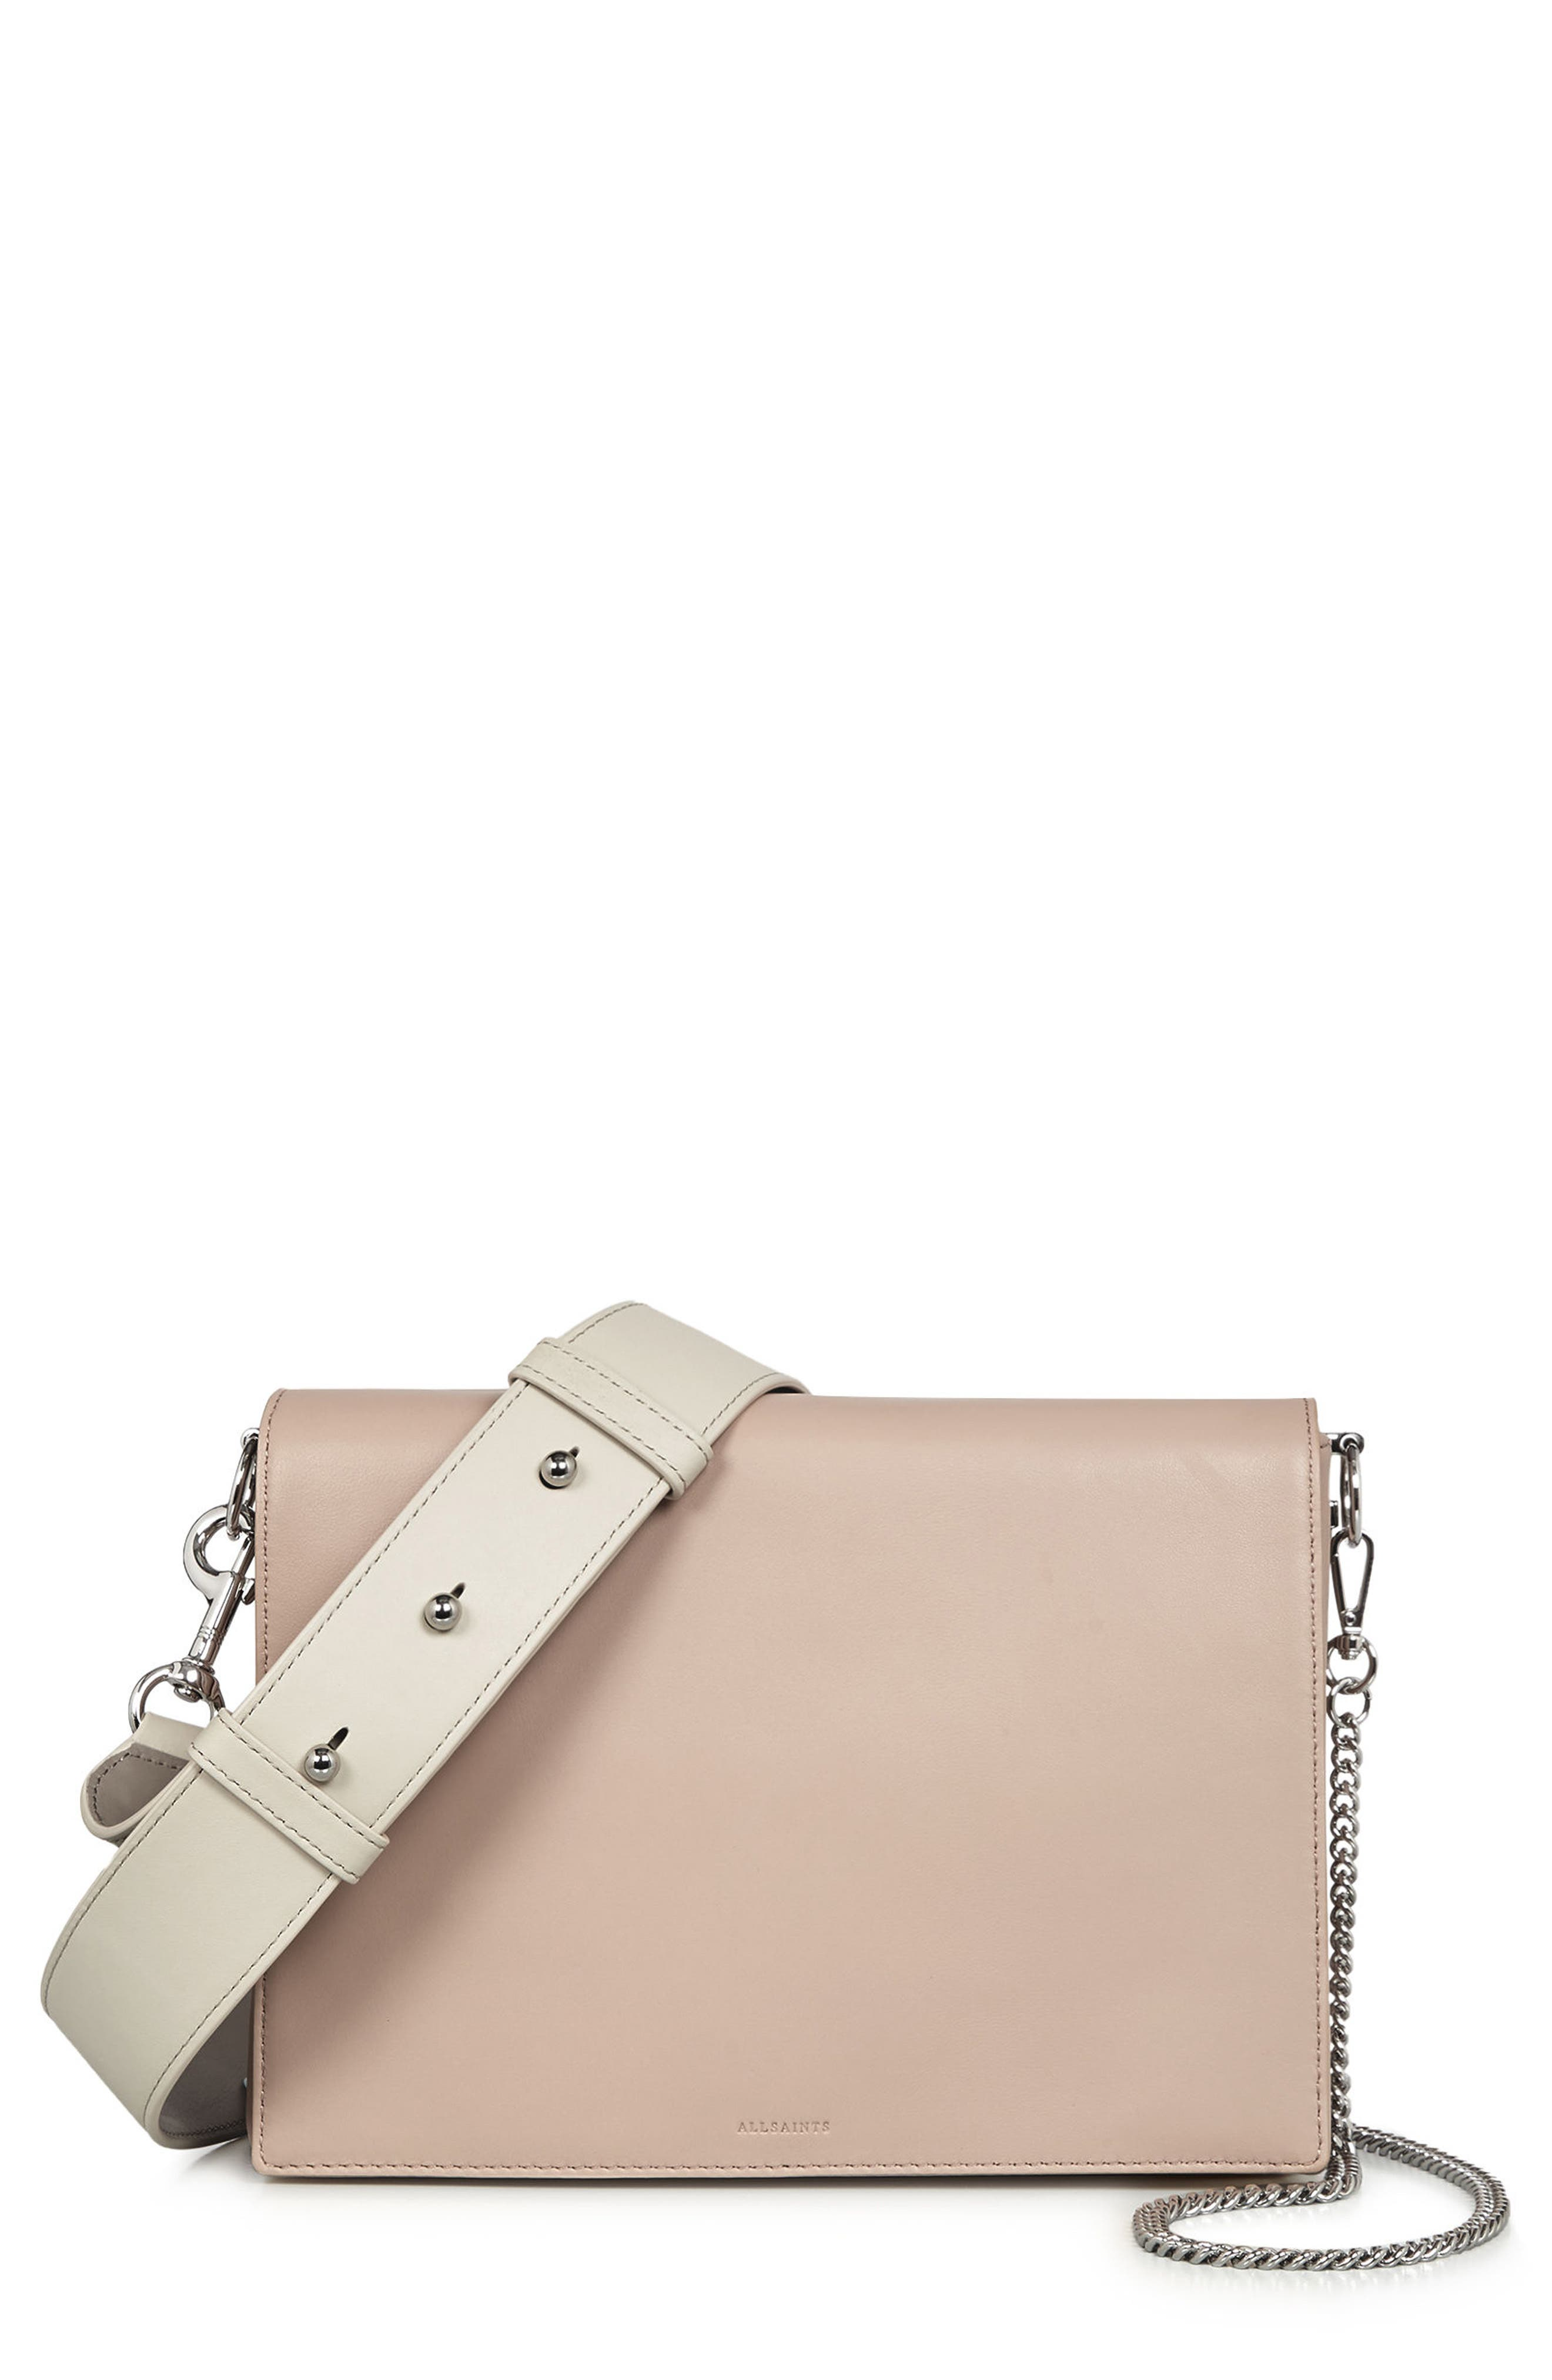 Zep Lambskin Leather Box Bag,                         Main,                         color, Natural